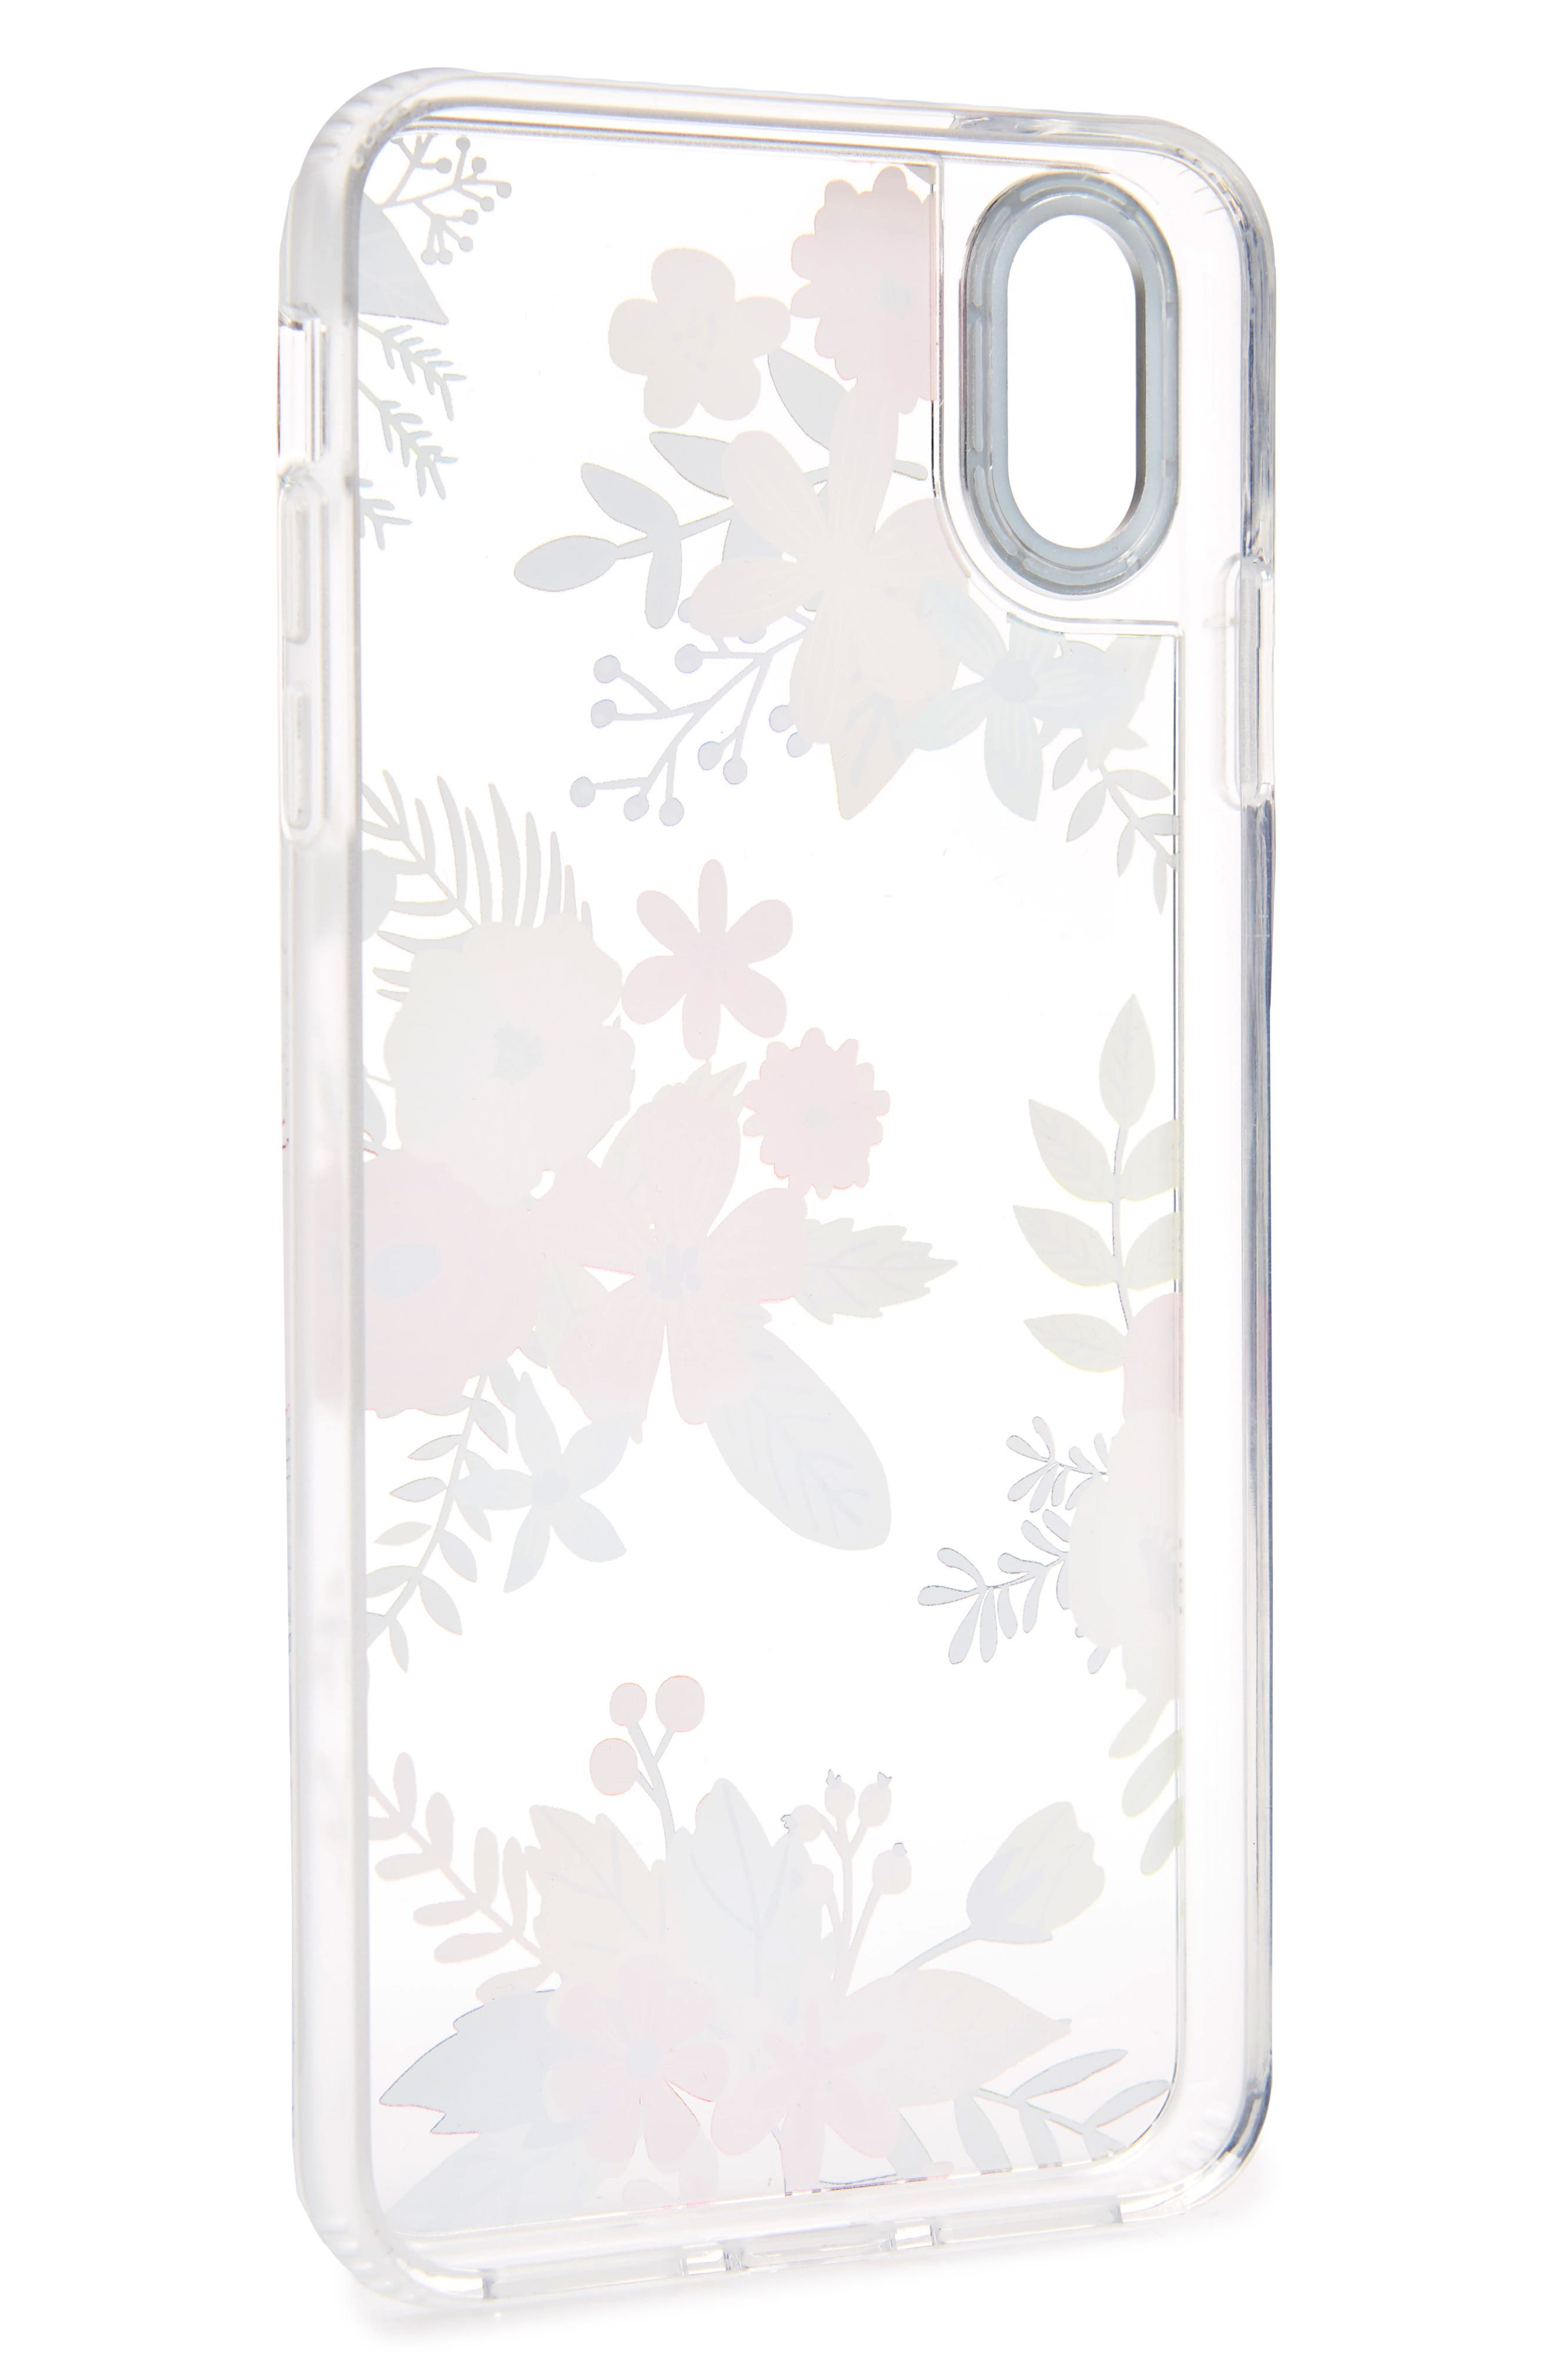 CASETIFY, Floral Collage Translucent iPhone X/Xs, XR & X Max Case, Alternate thumbnail 2, color, MULTI FLORAL